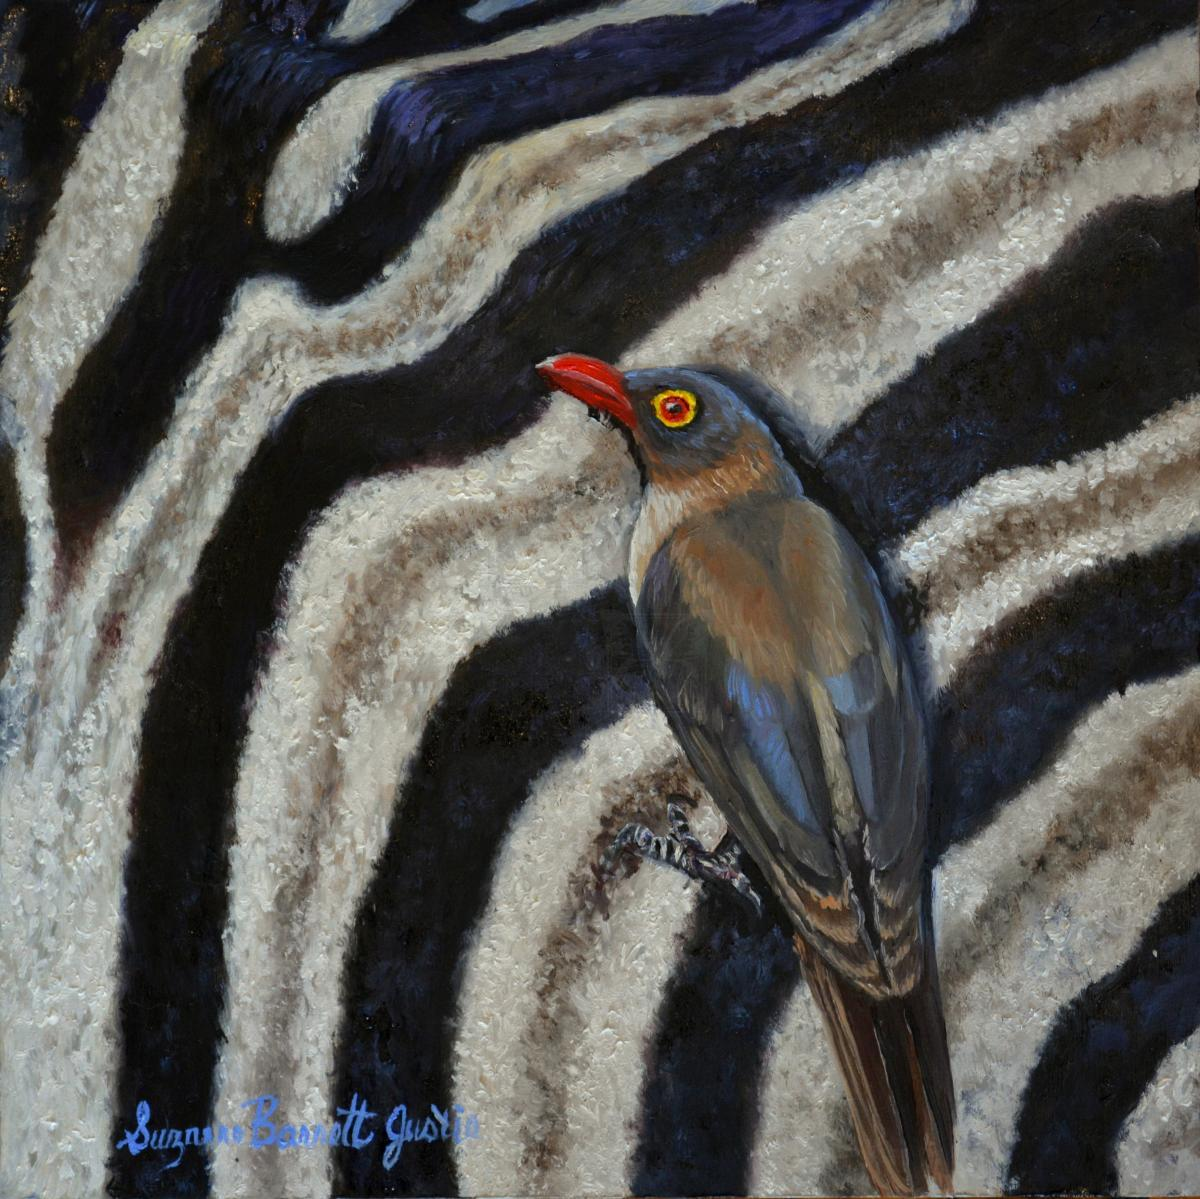 Add Artwork | Wallhanging by Suzanne Barrett Justis | Artists for Conservation